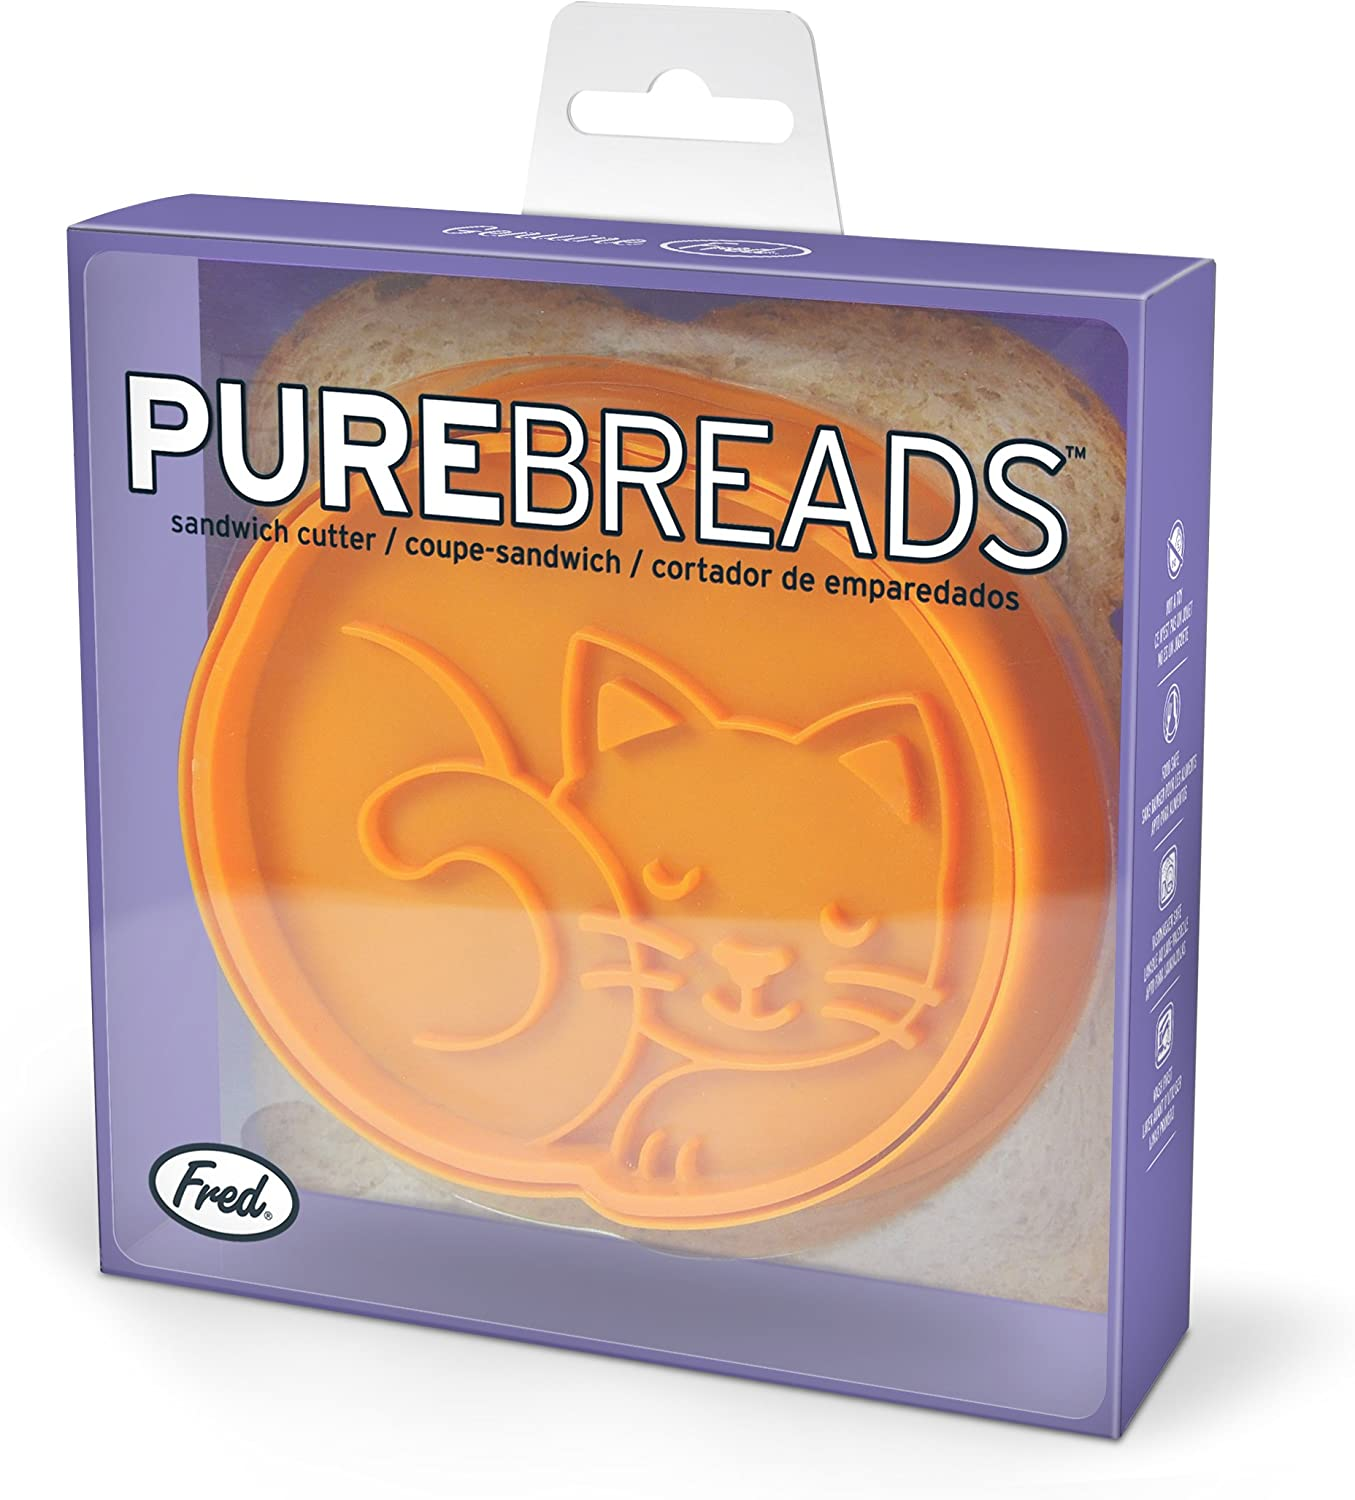 Cat Fred PUREBREADS Cut and Seal Sandwich Stamp